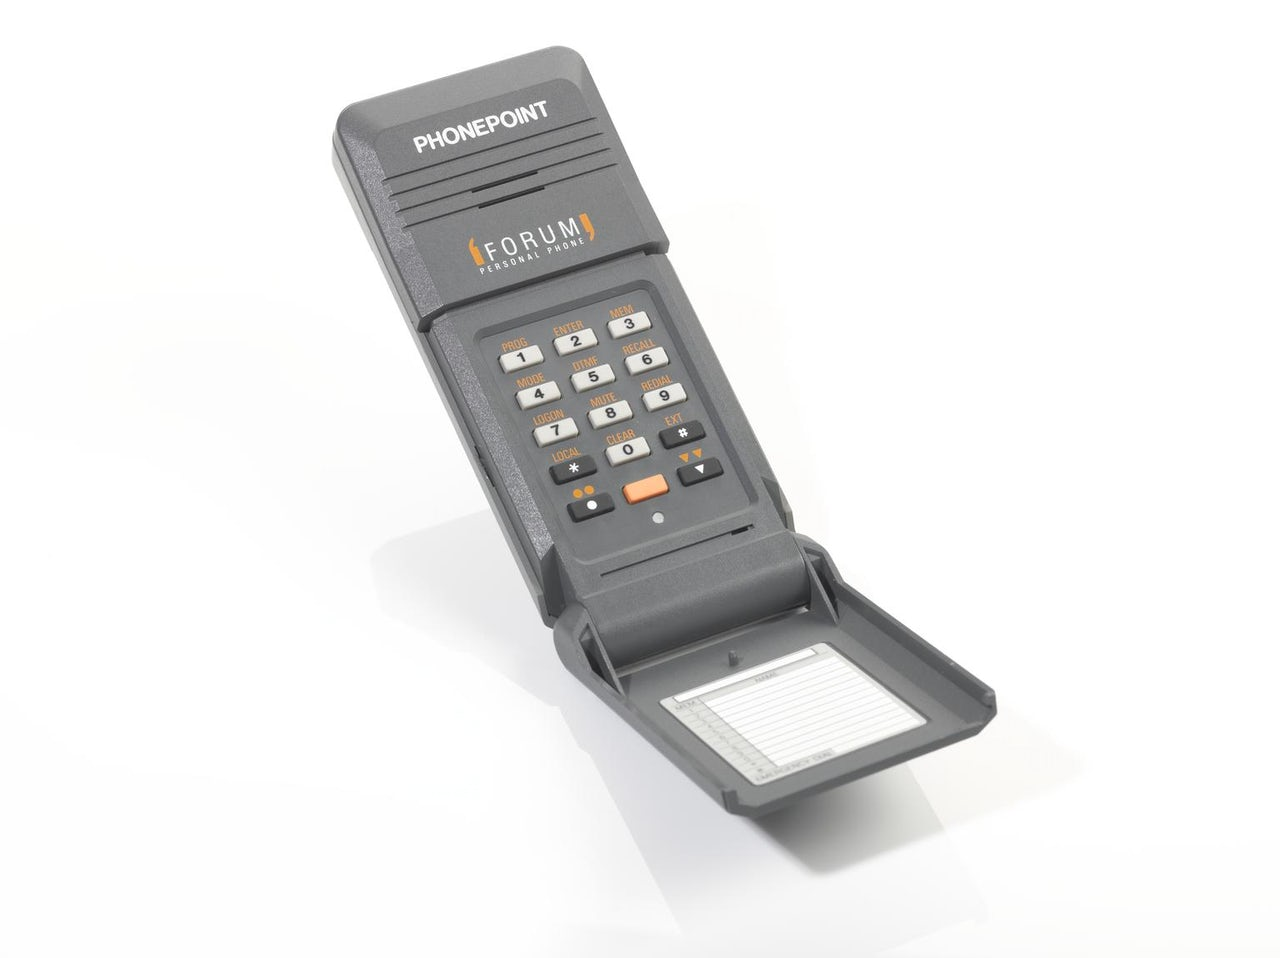 Forum Phonepoint Personal Telephone (1989)